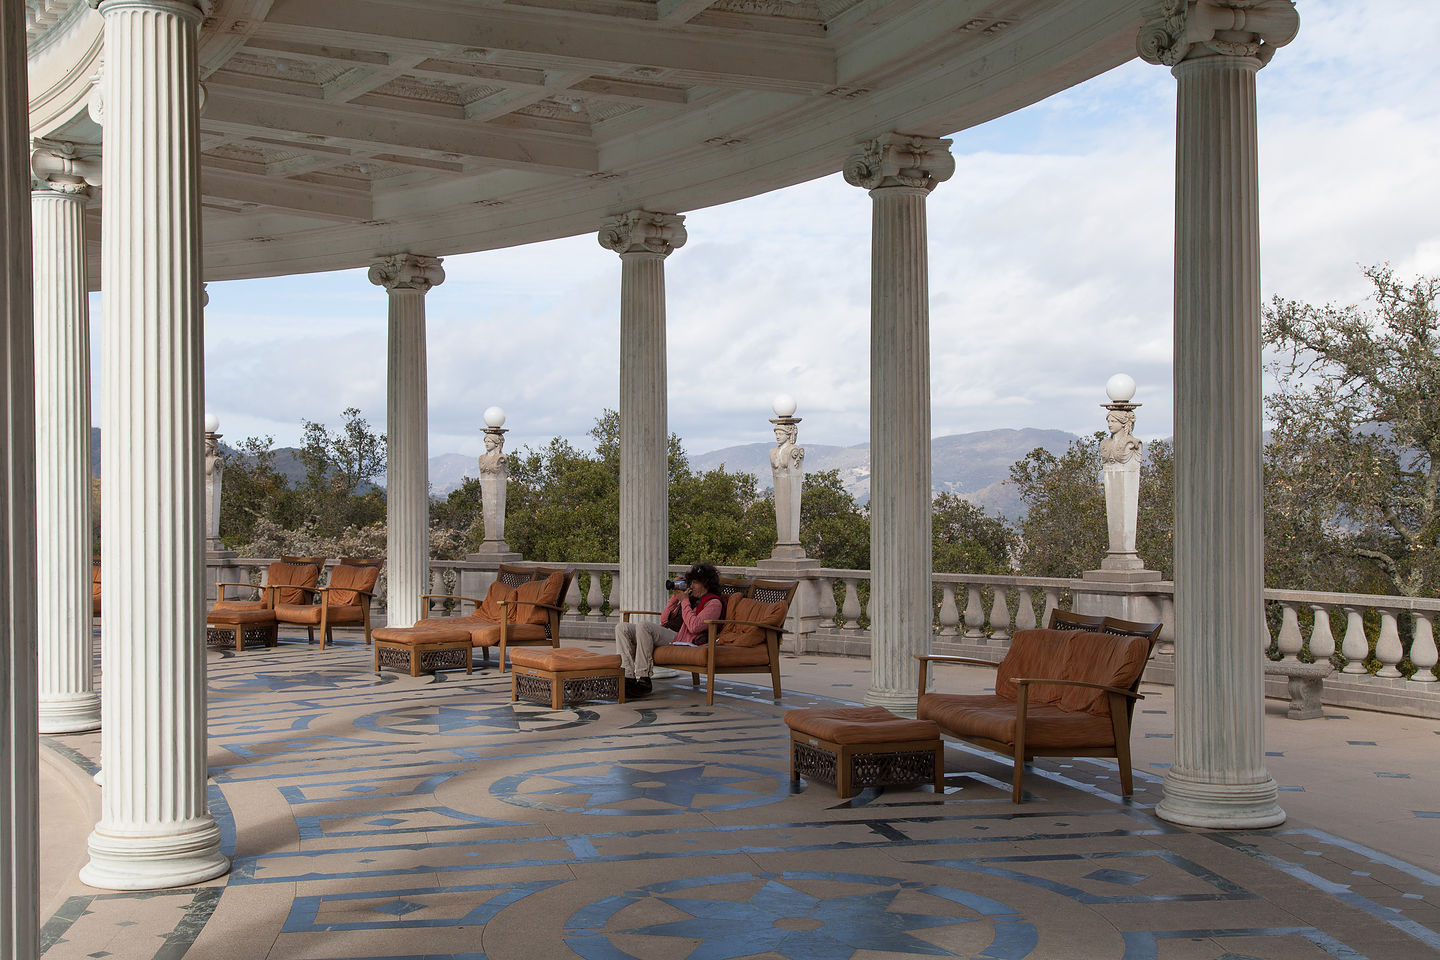 Lolo at hearst castle neptune pool lolo 39 s extreme cross - Hearst castle neptune pool swim auction ...